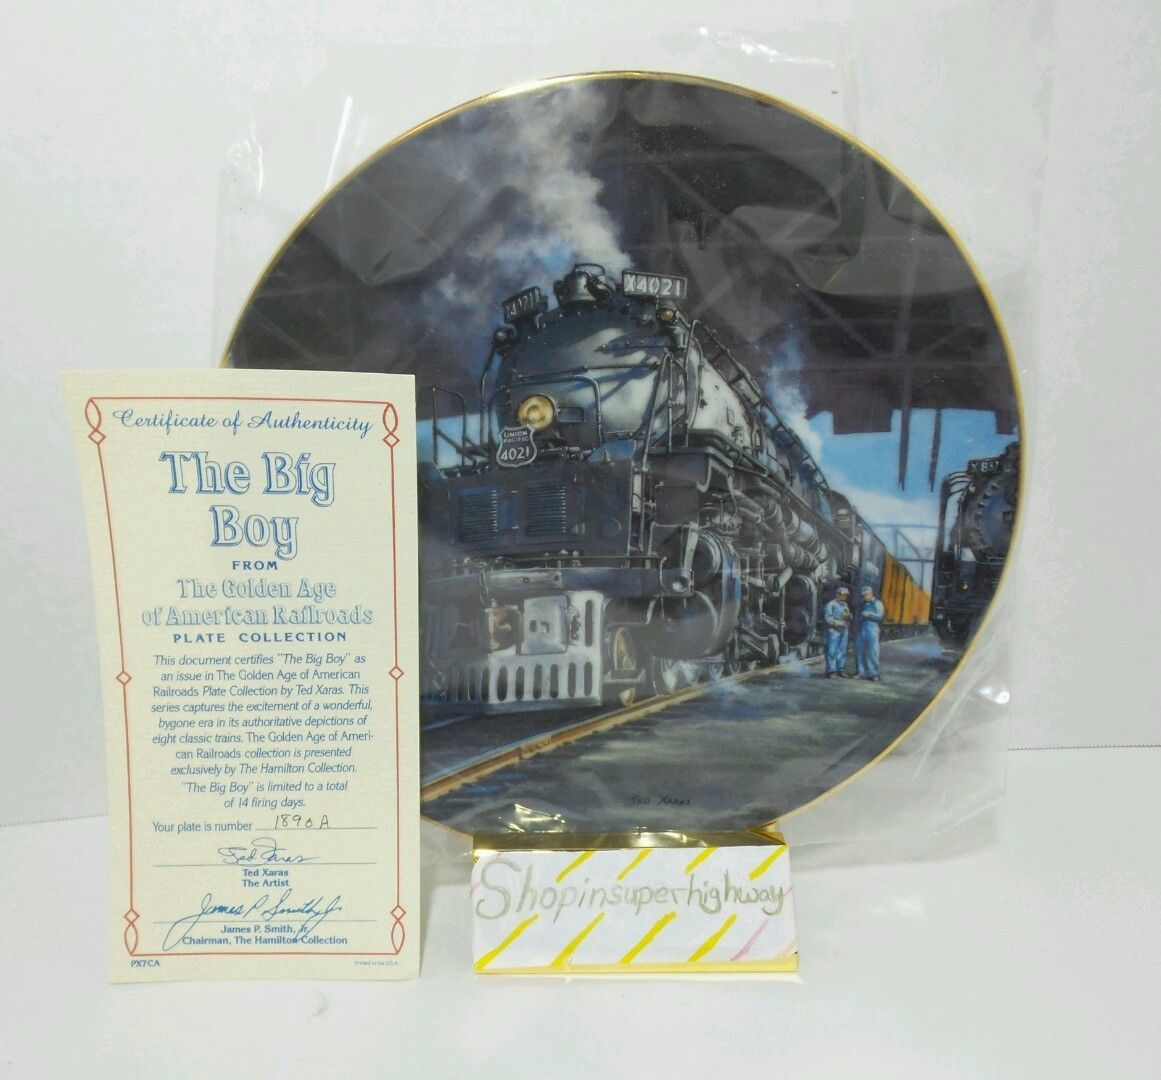 The Big Boy Golden Age American Railroads Authentic Collectible Plate